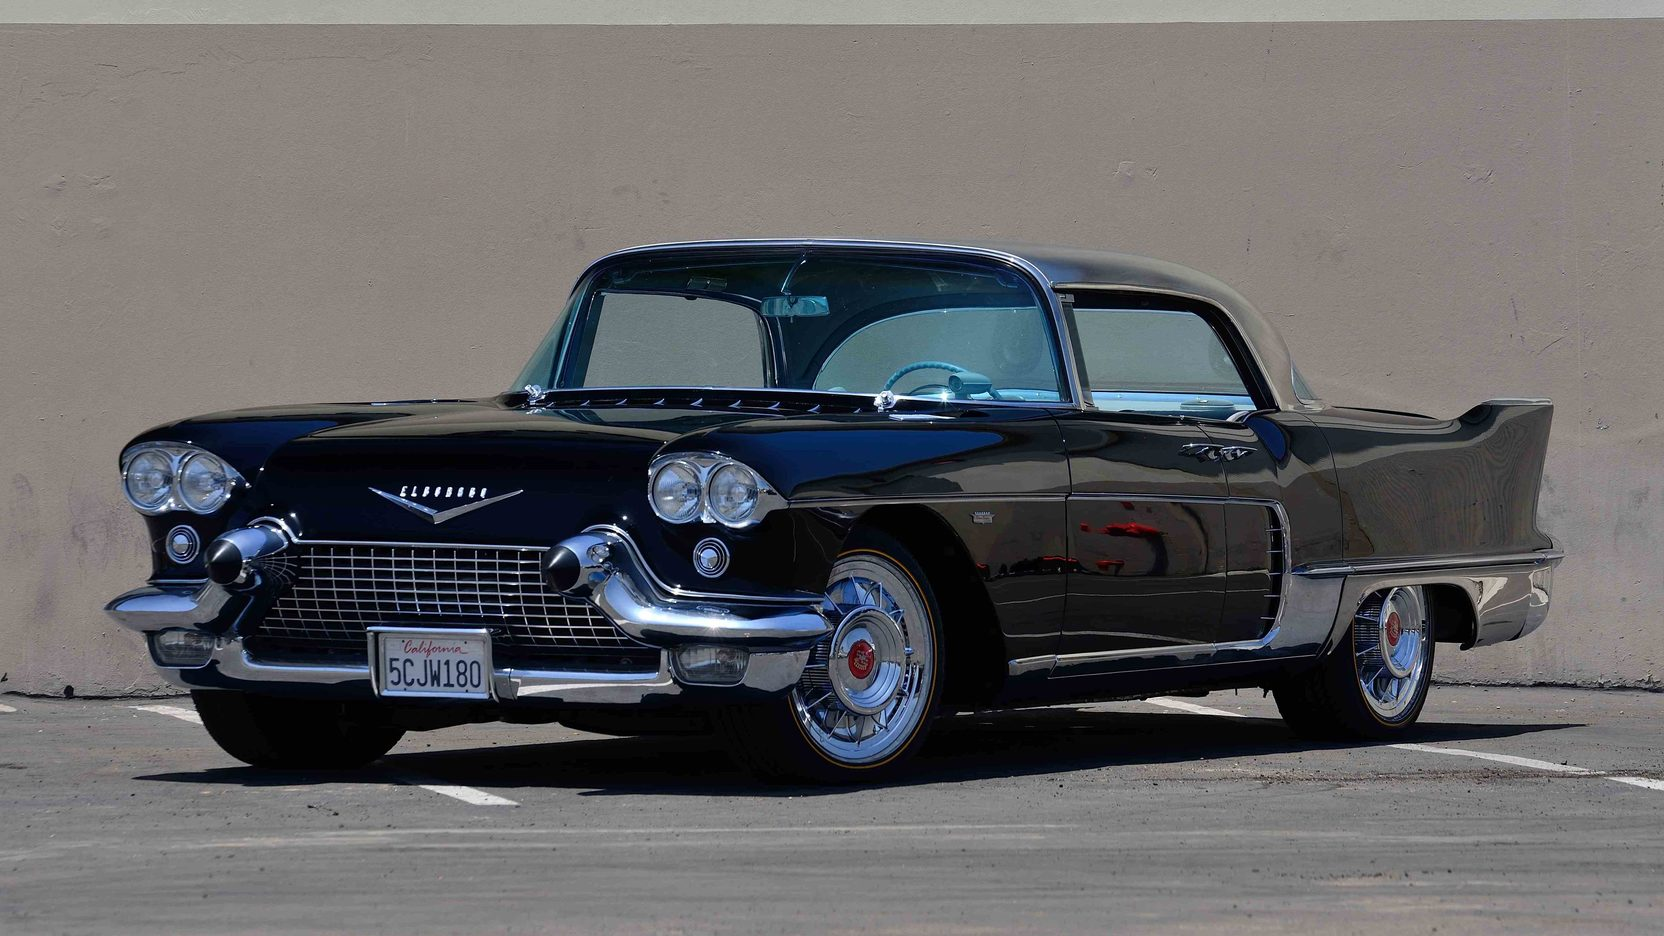 HQ 1958 Cadillac Eldorado Brougham Wallpapers | File 227.73Kb